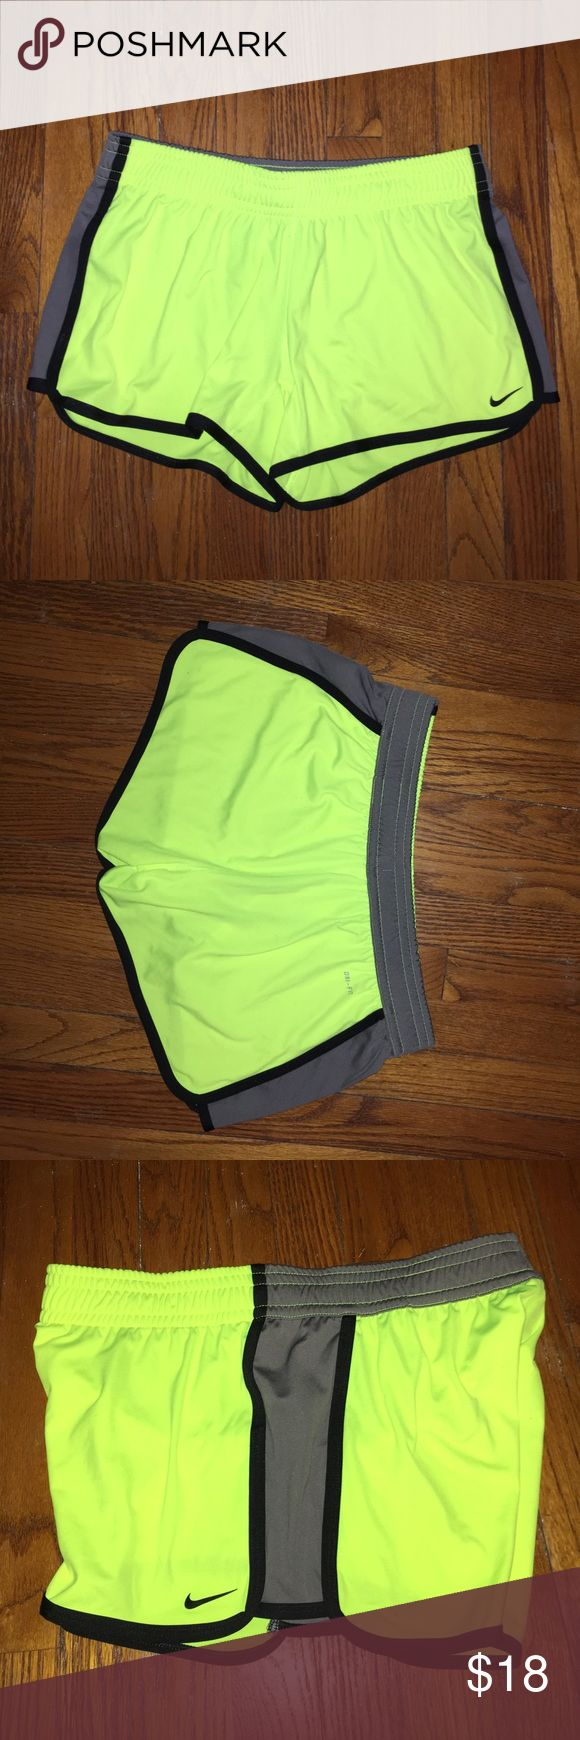 Nike Athletic Shorts in Bright Yellow These comfortable running shorts are perfect for any active lifestyle! With a near neon yellow base, grey panels, and black piping, they are sure to make you stand out on your morning run! In perfect condition, no stains or pills, only worn twice! Nike Shorts